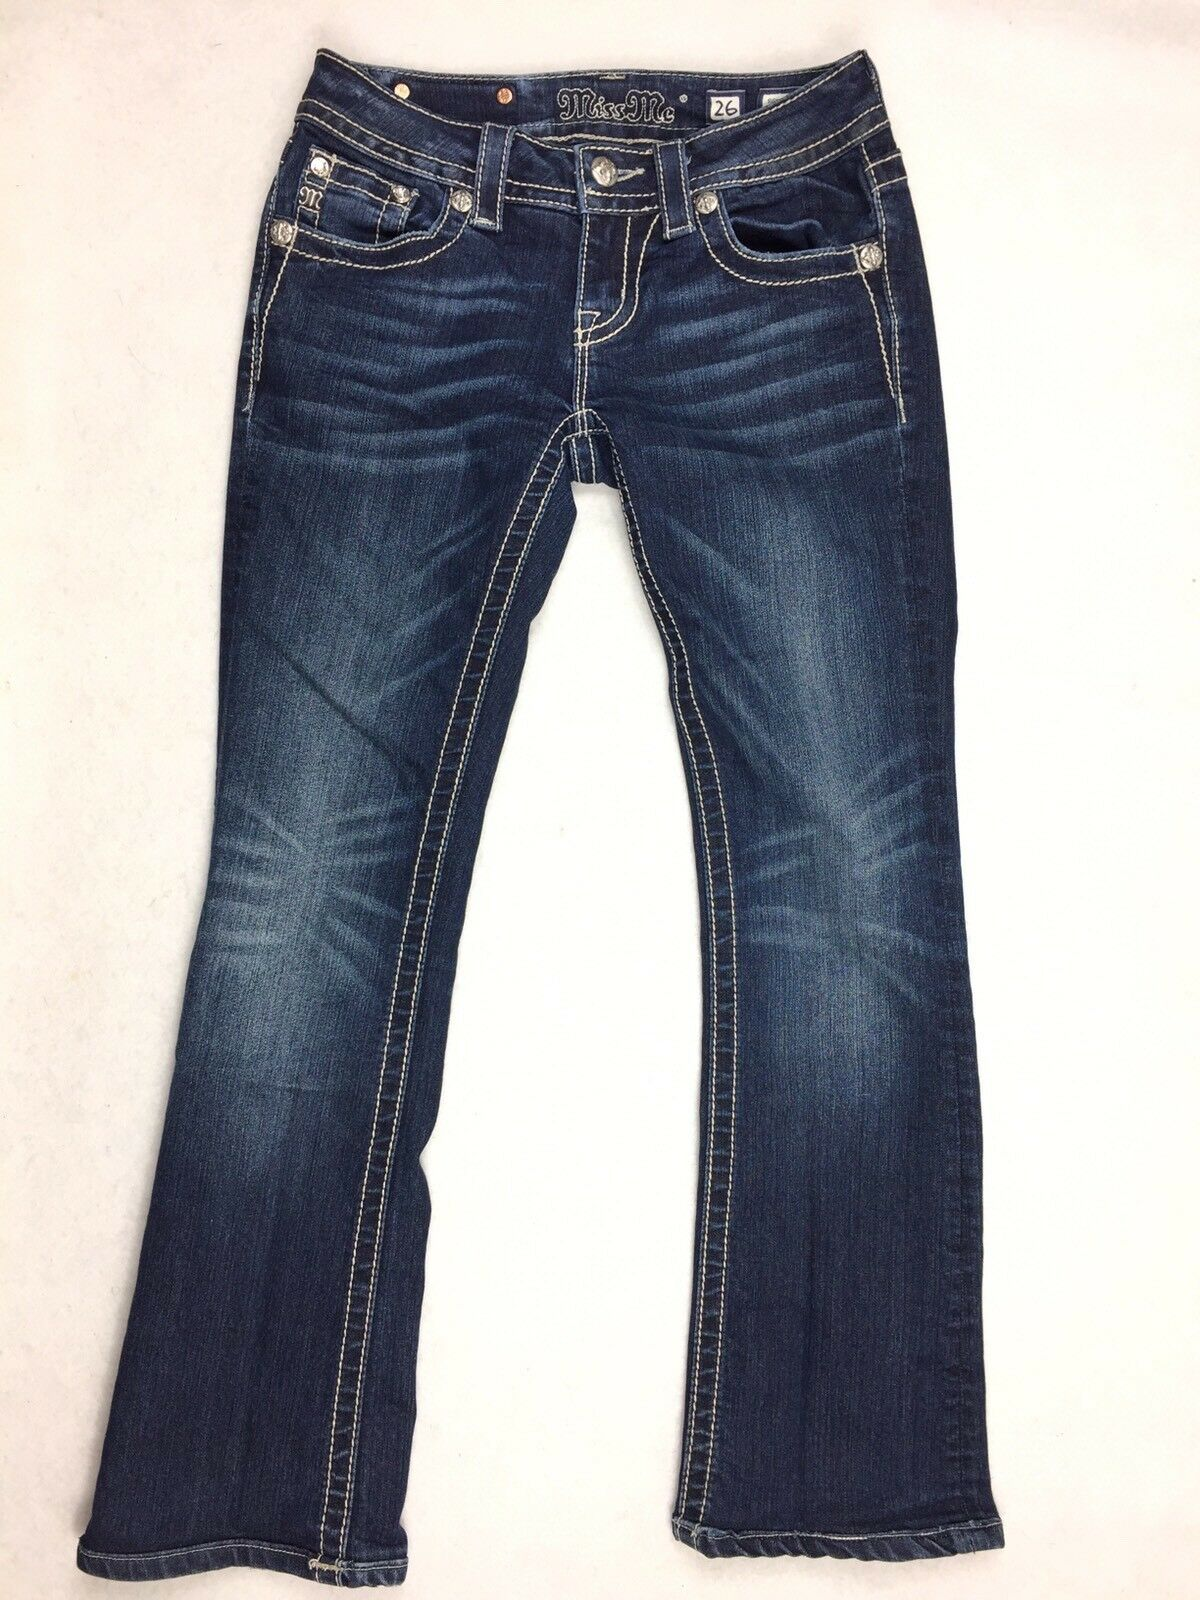 MISS ME Women's Jeans Peace Signature Boot Cut Denim Jeans Size 26x28